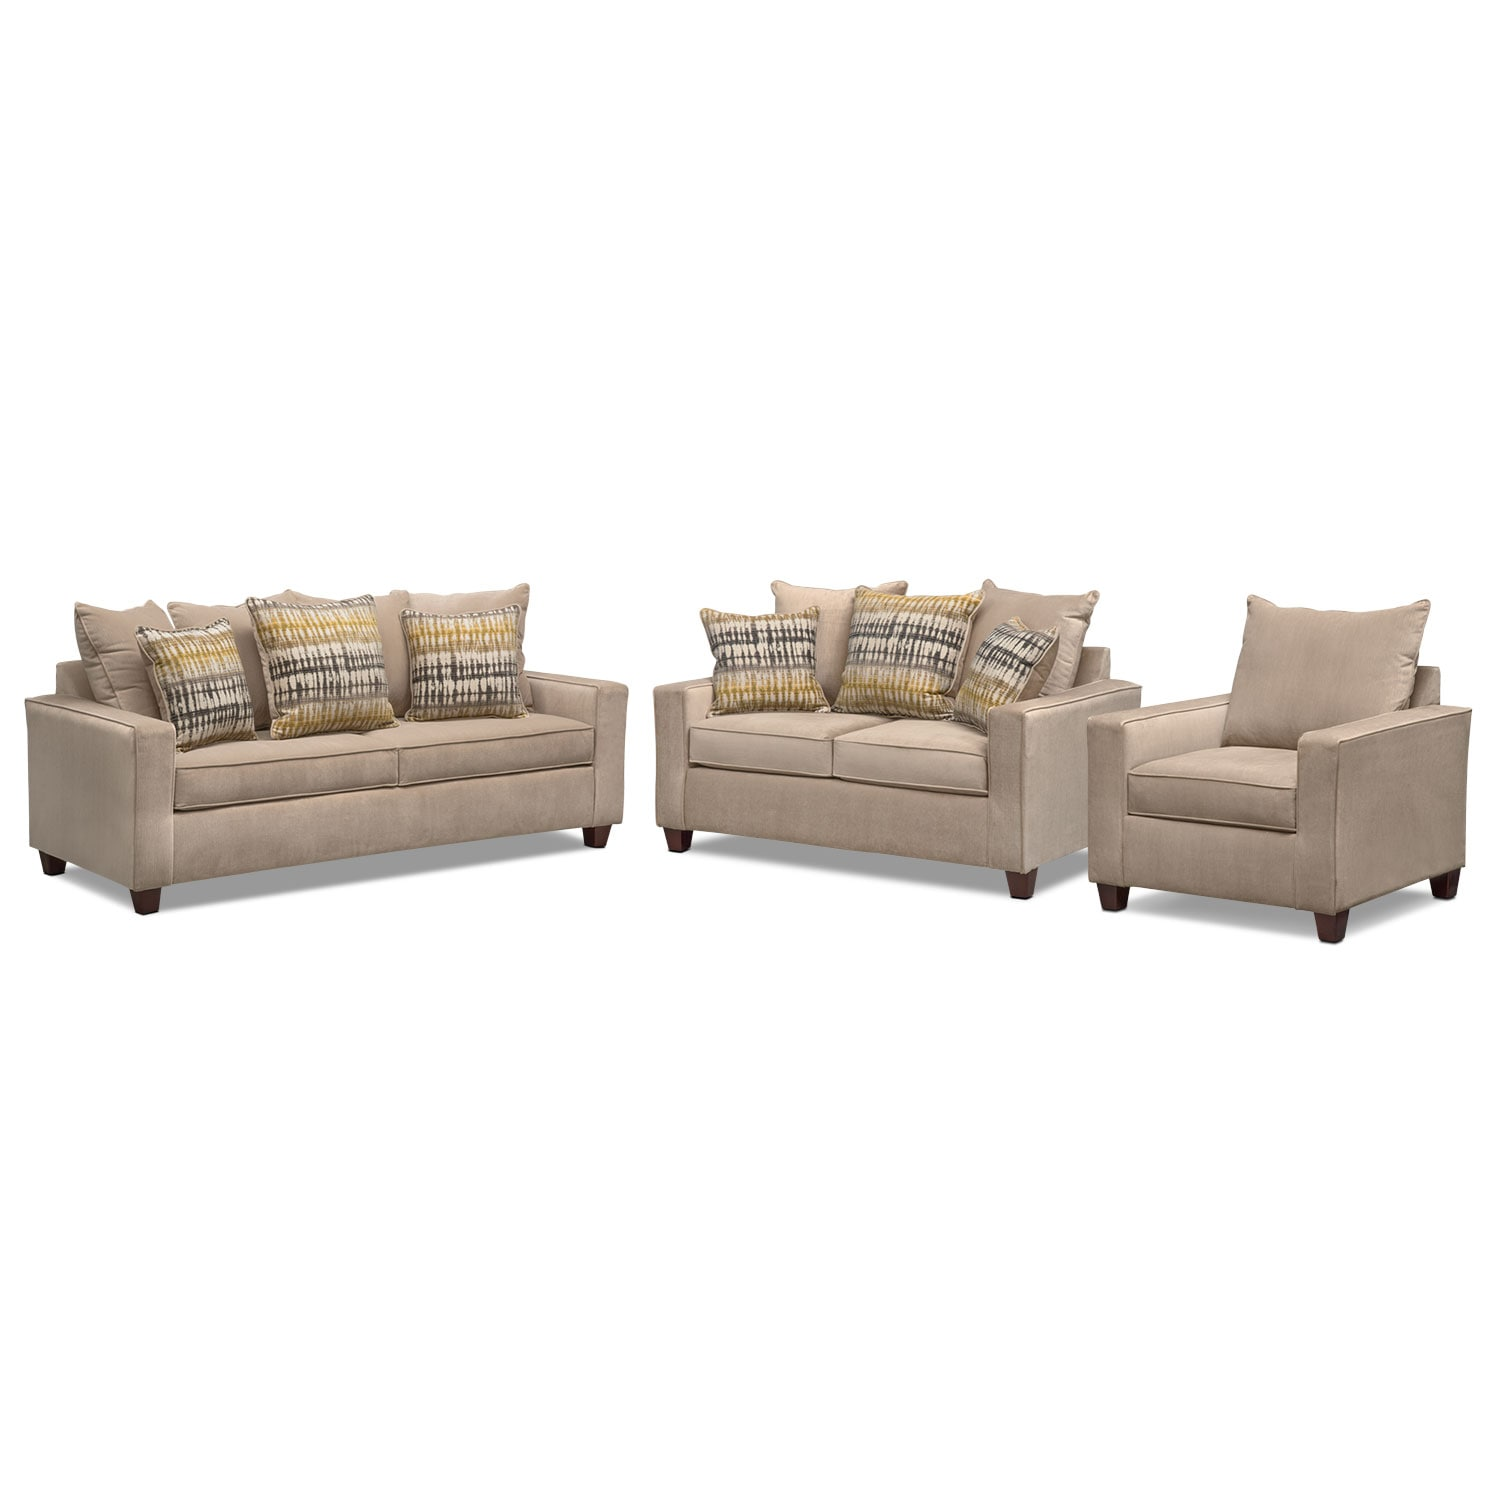 Living Room Furniture - Bryden Queen Innerspring Sleeper Sofa, Loveseat and Chair Set - Beige